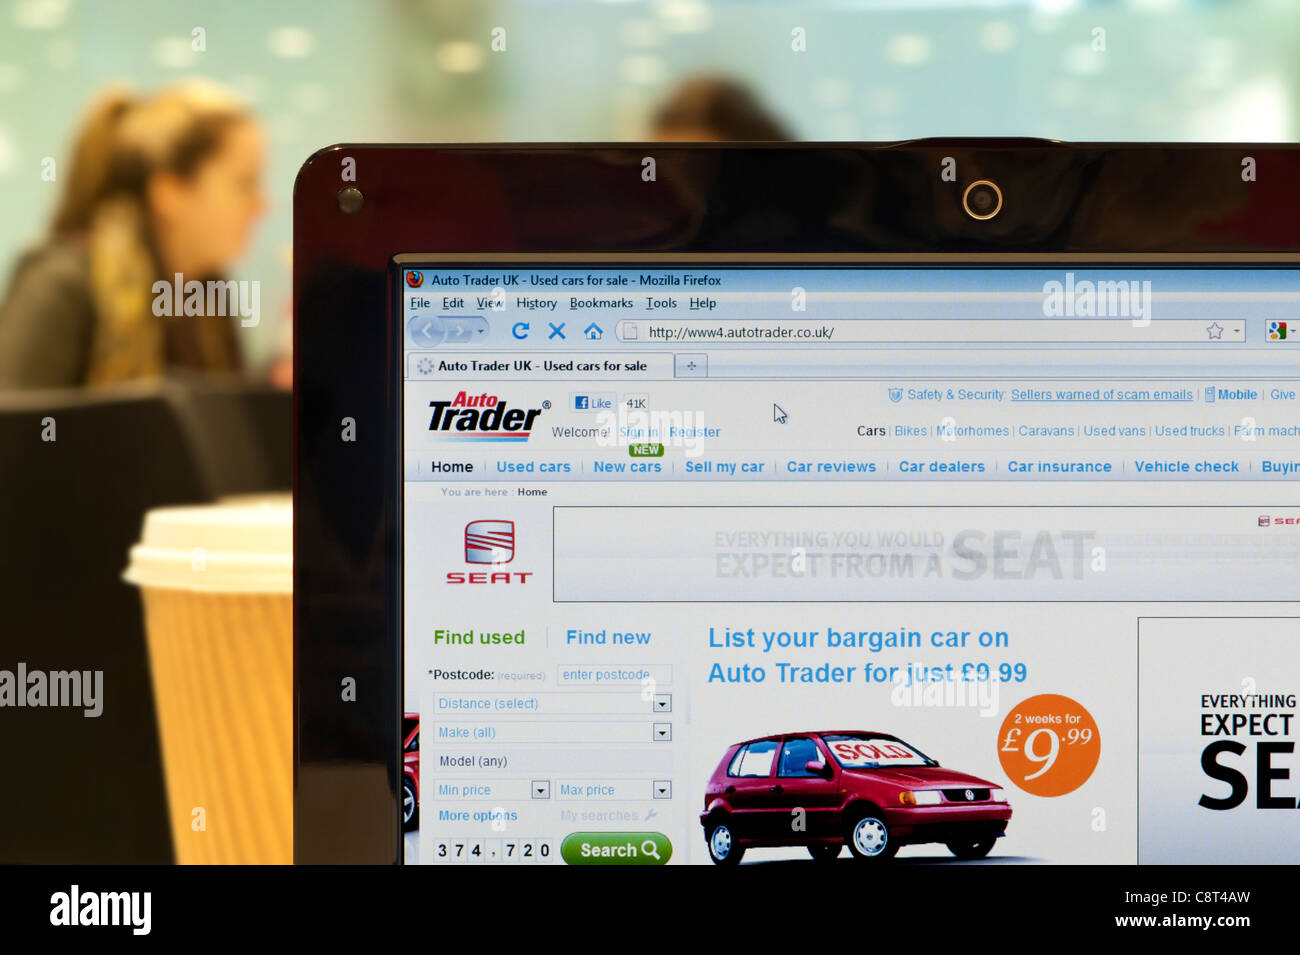 Auto Trader Stock Photos & Auto Trader Stock Images - Alamy